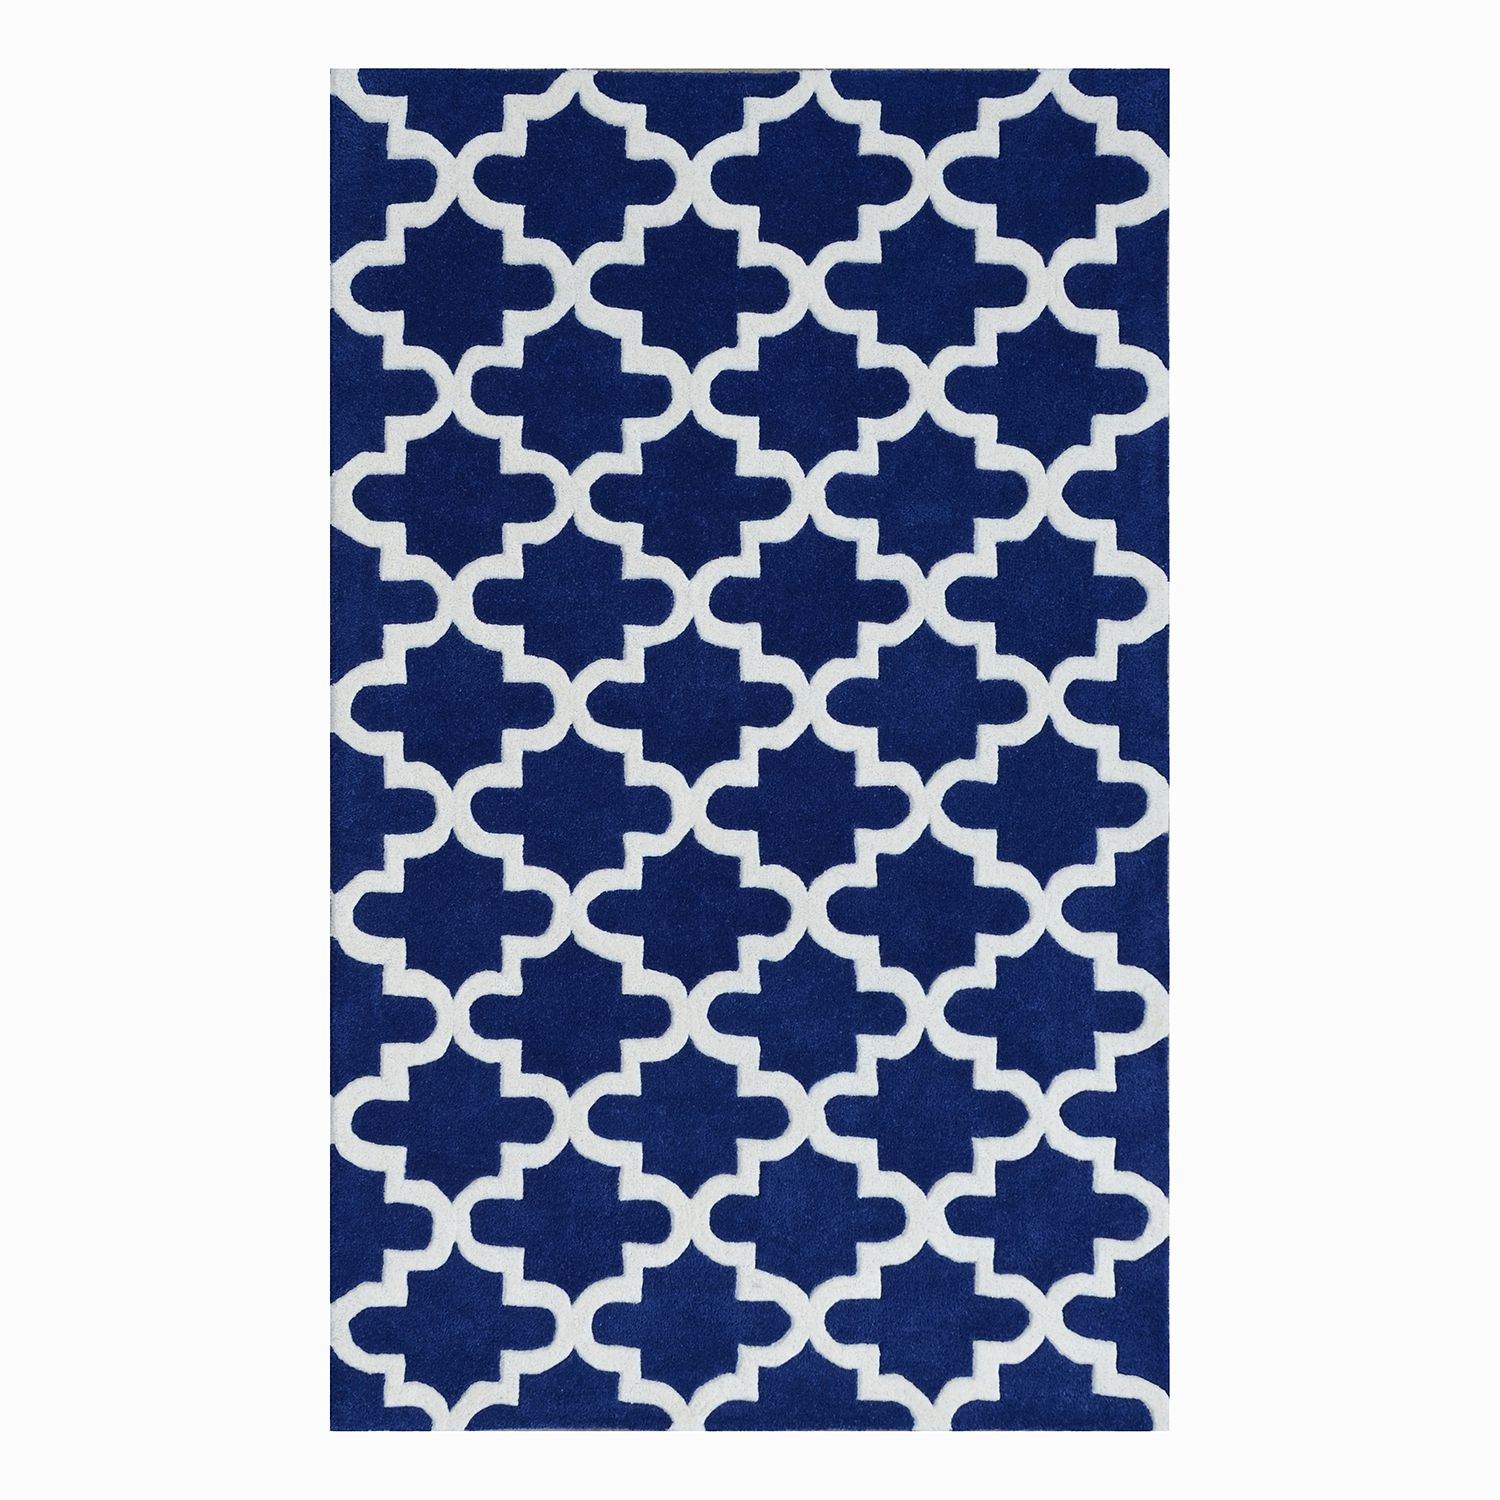 Teppich Graphico - Wolle - Royalblau / Weiß, Top Square